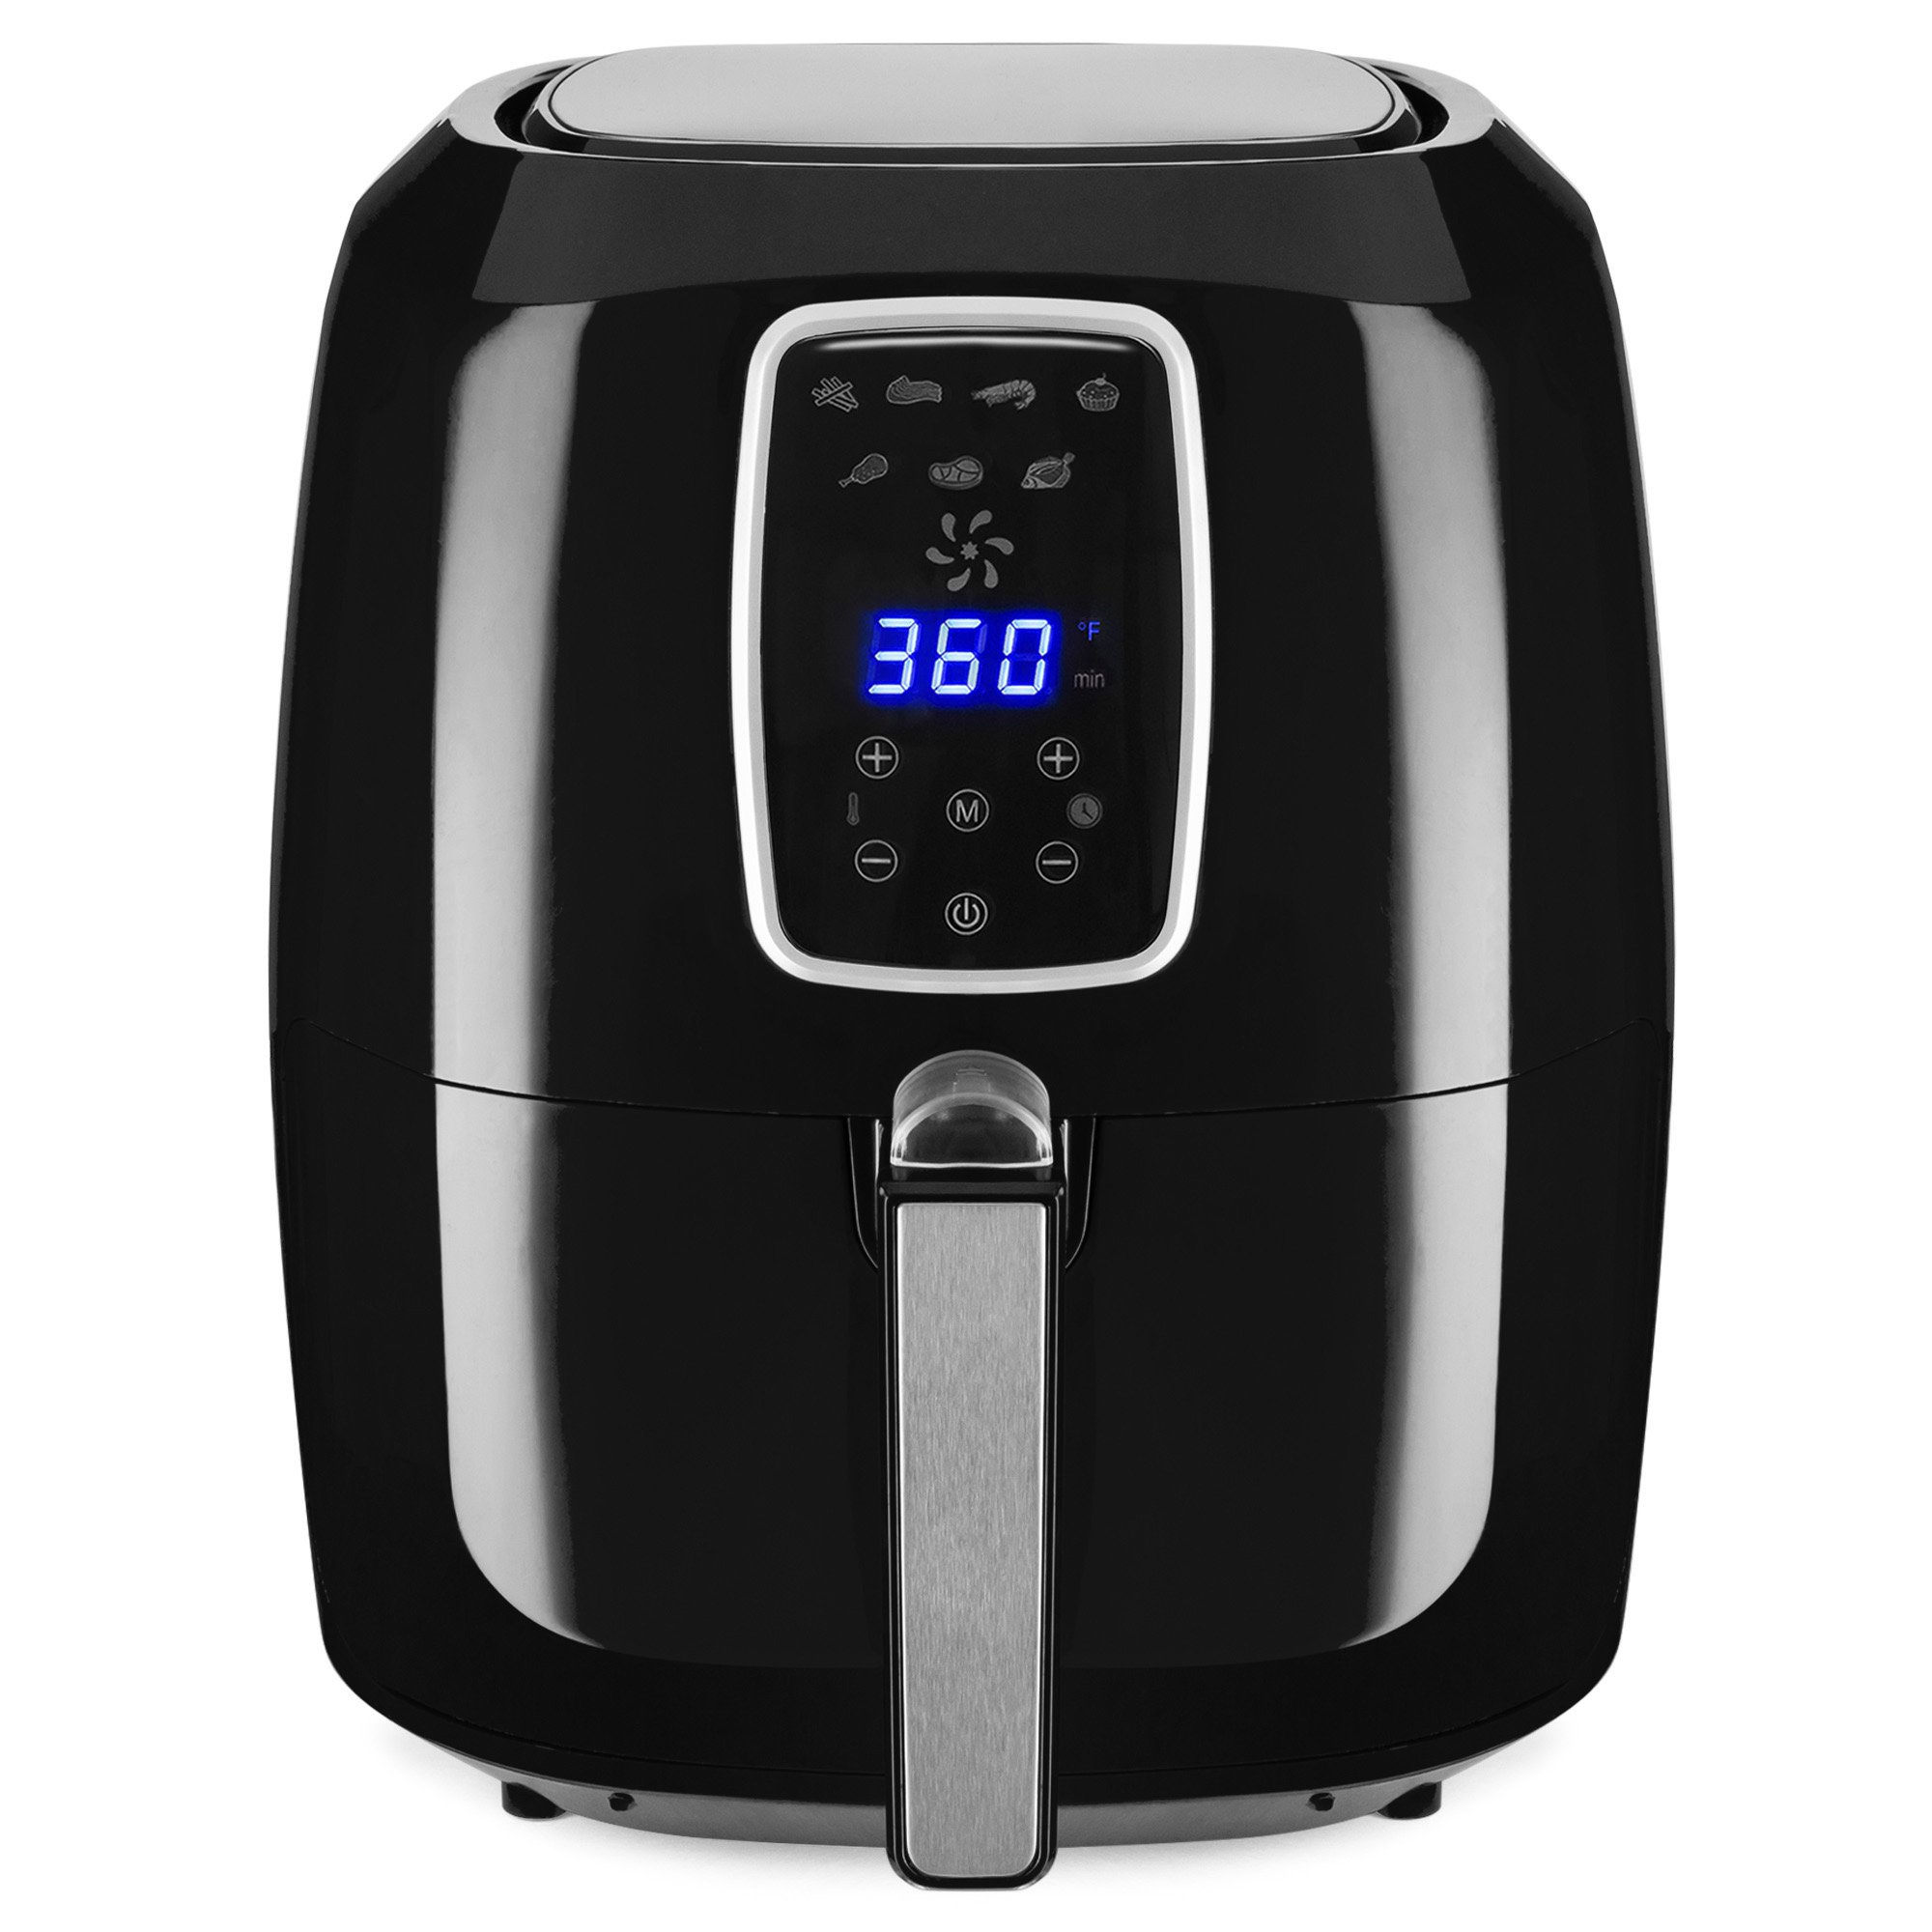 Best Choice Products 5.5qt Electric Digital Air Fryer w/LCD Screen, 7 Preset Settings, Non-Stick Coating